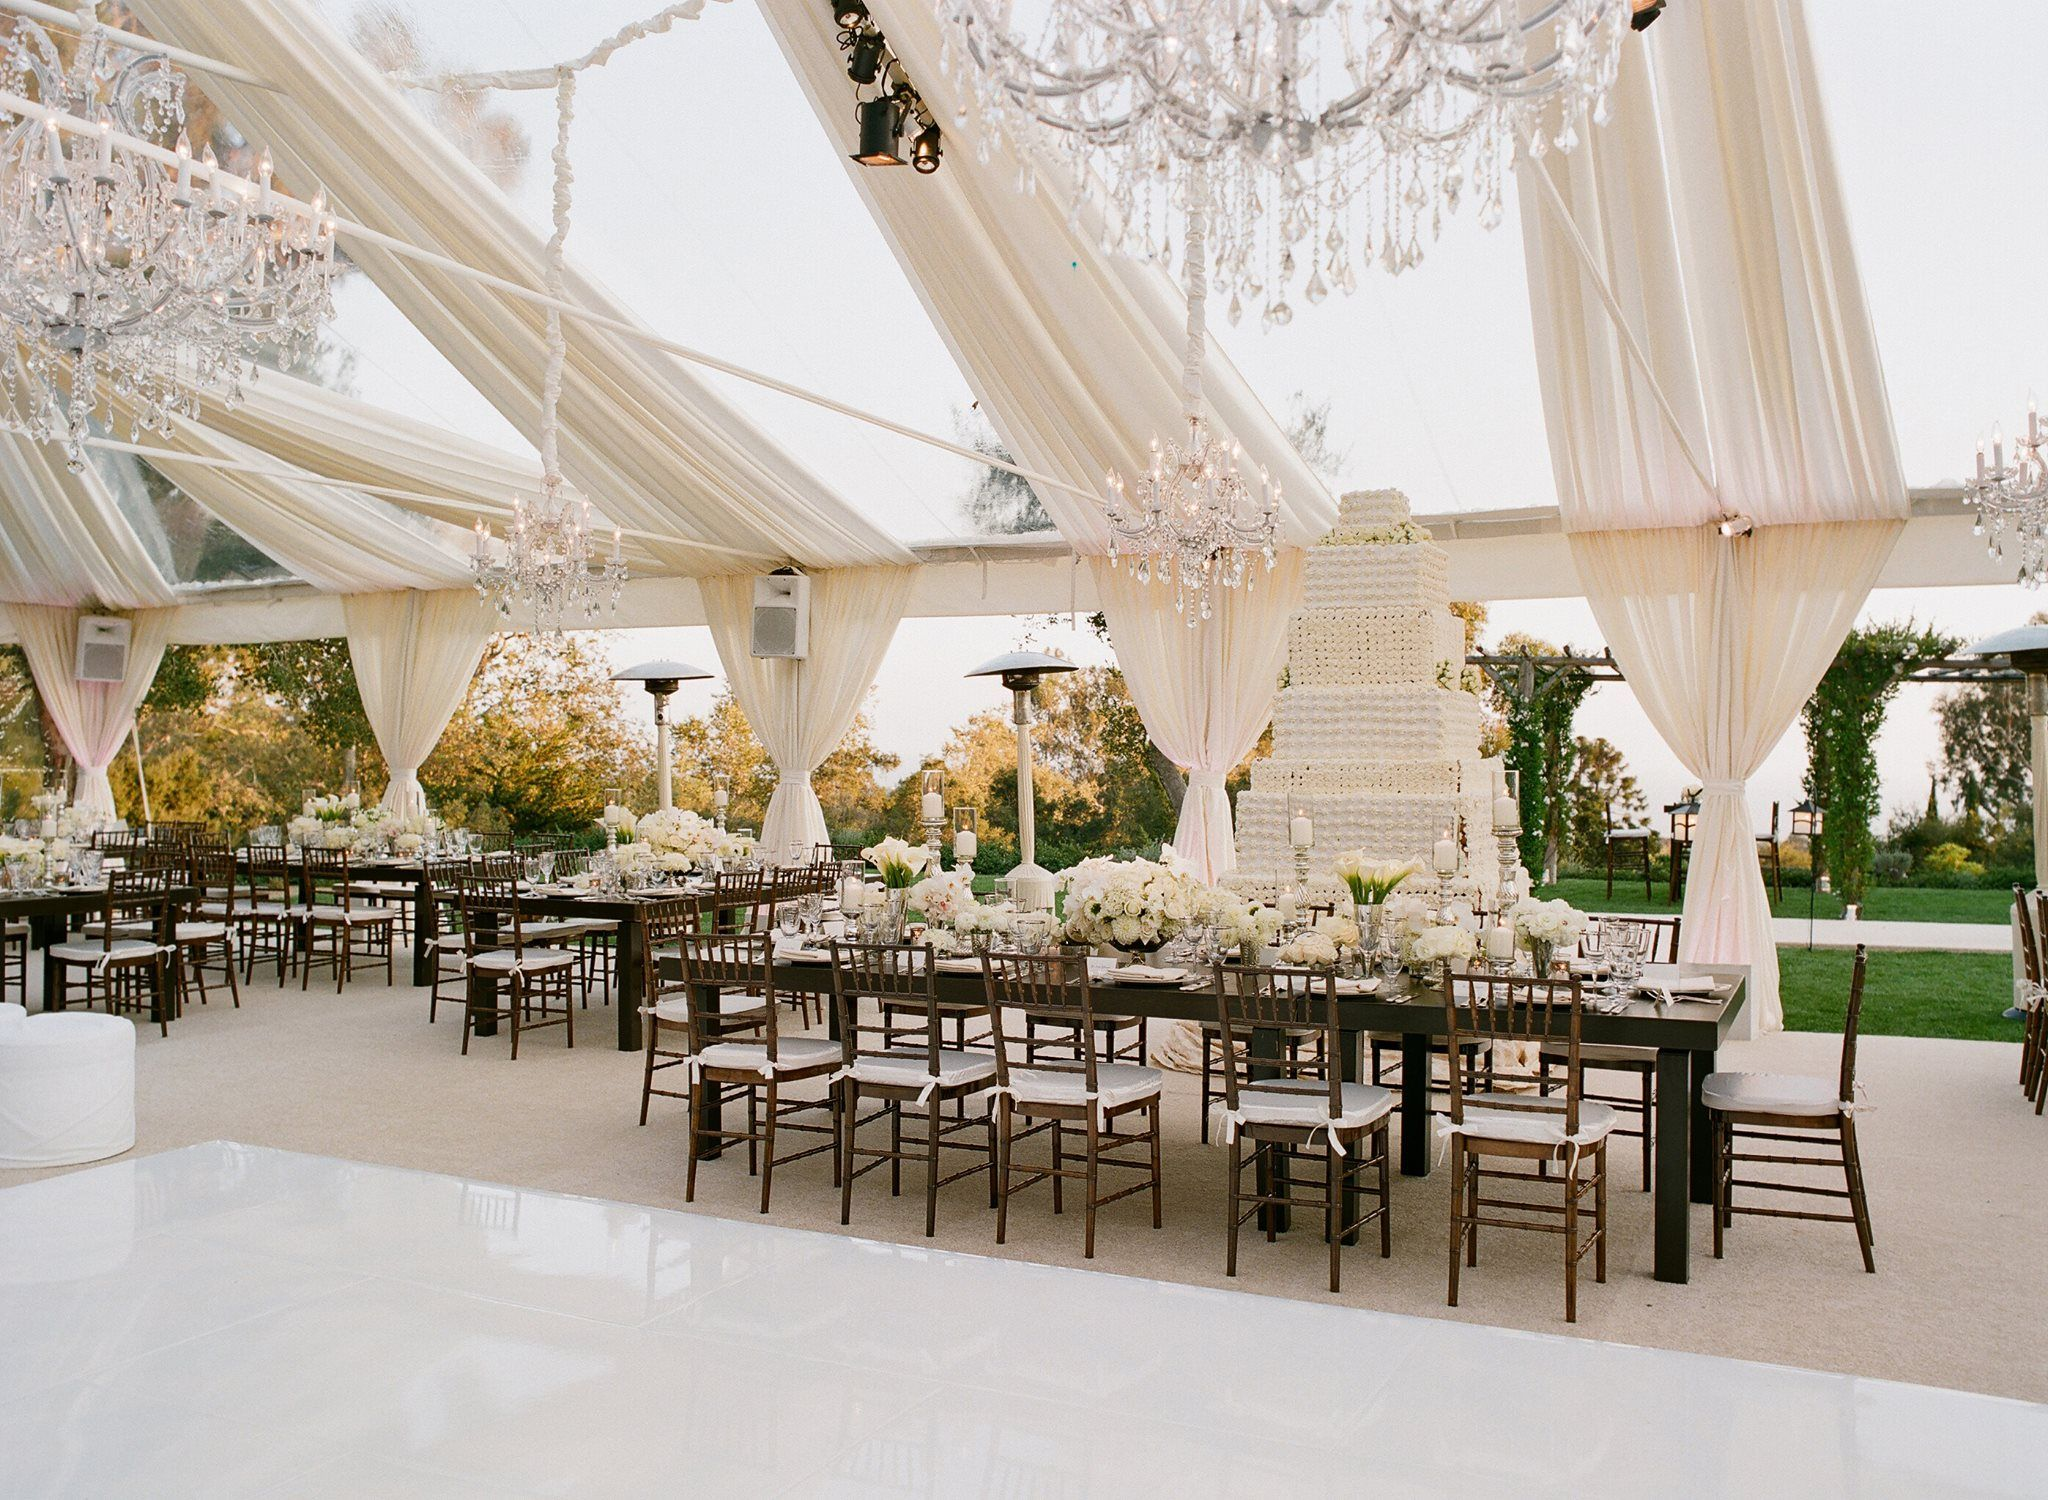 Rentals And Decor And Chairs Oh My Classic Party Rentals To The